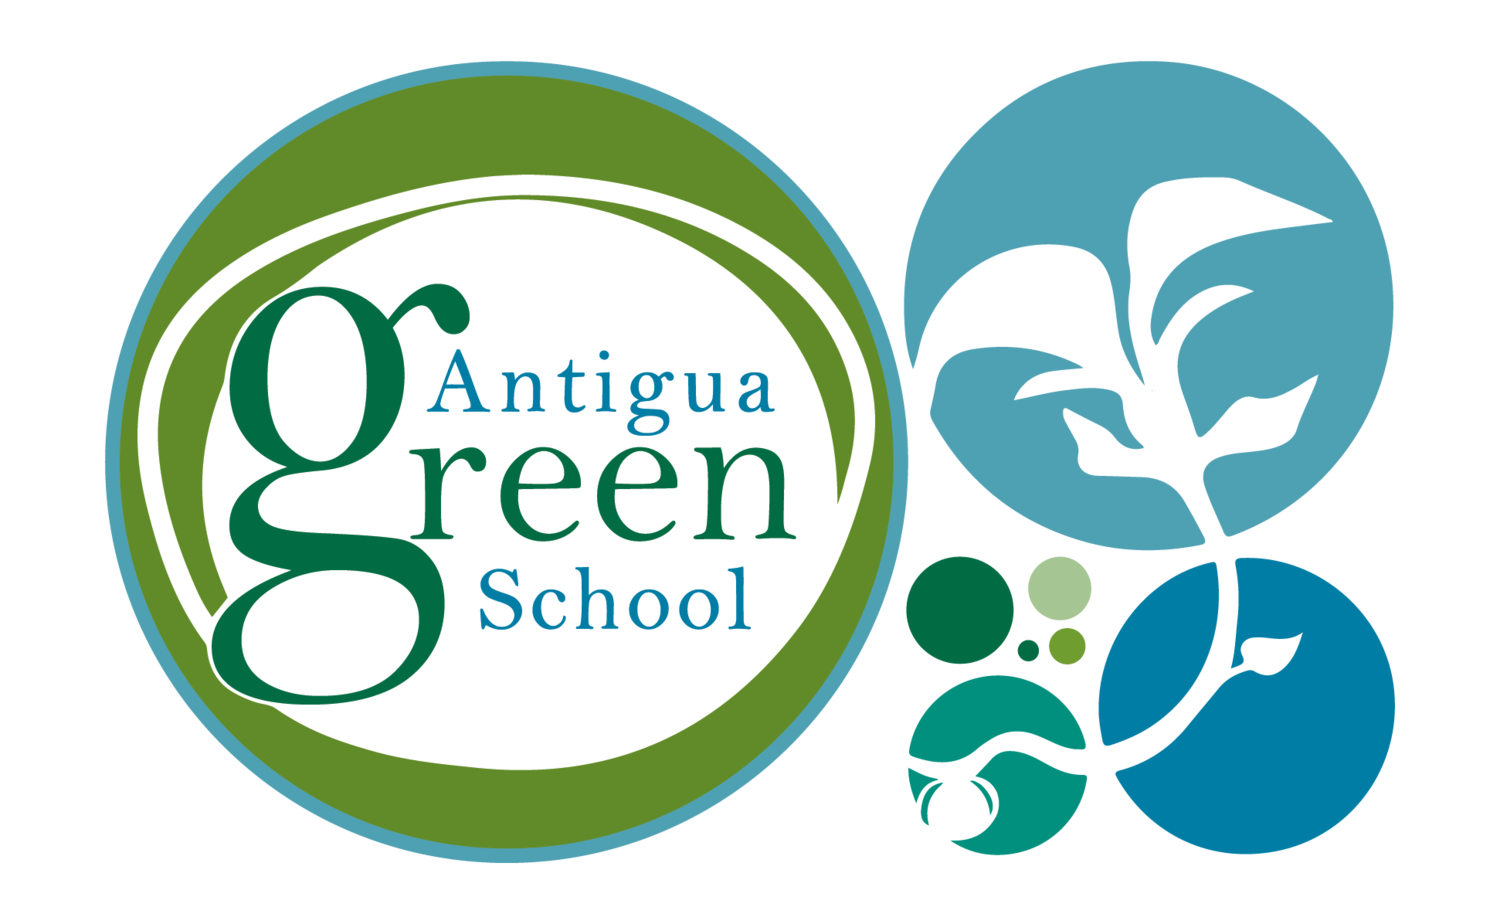 Antigua Green School